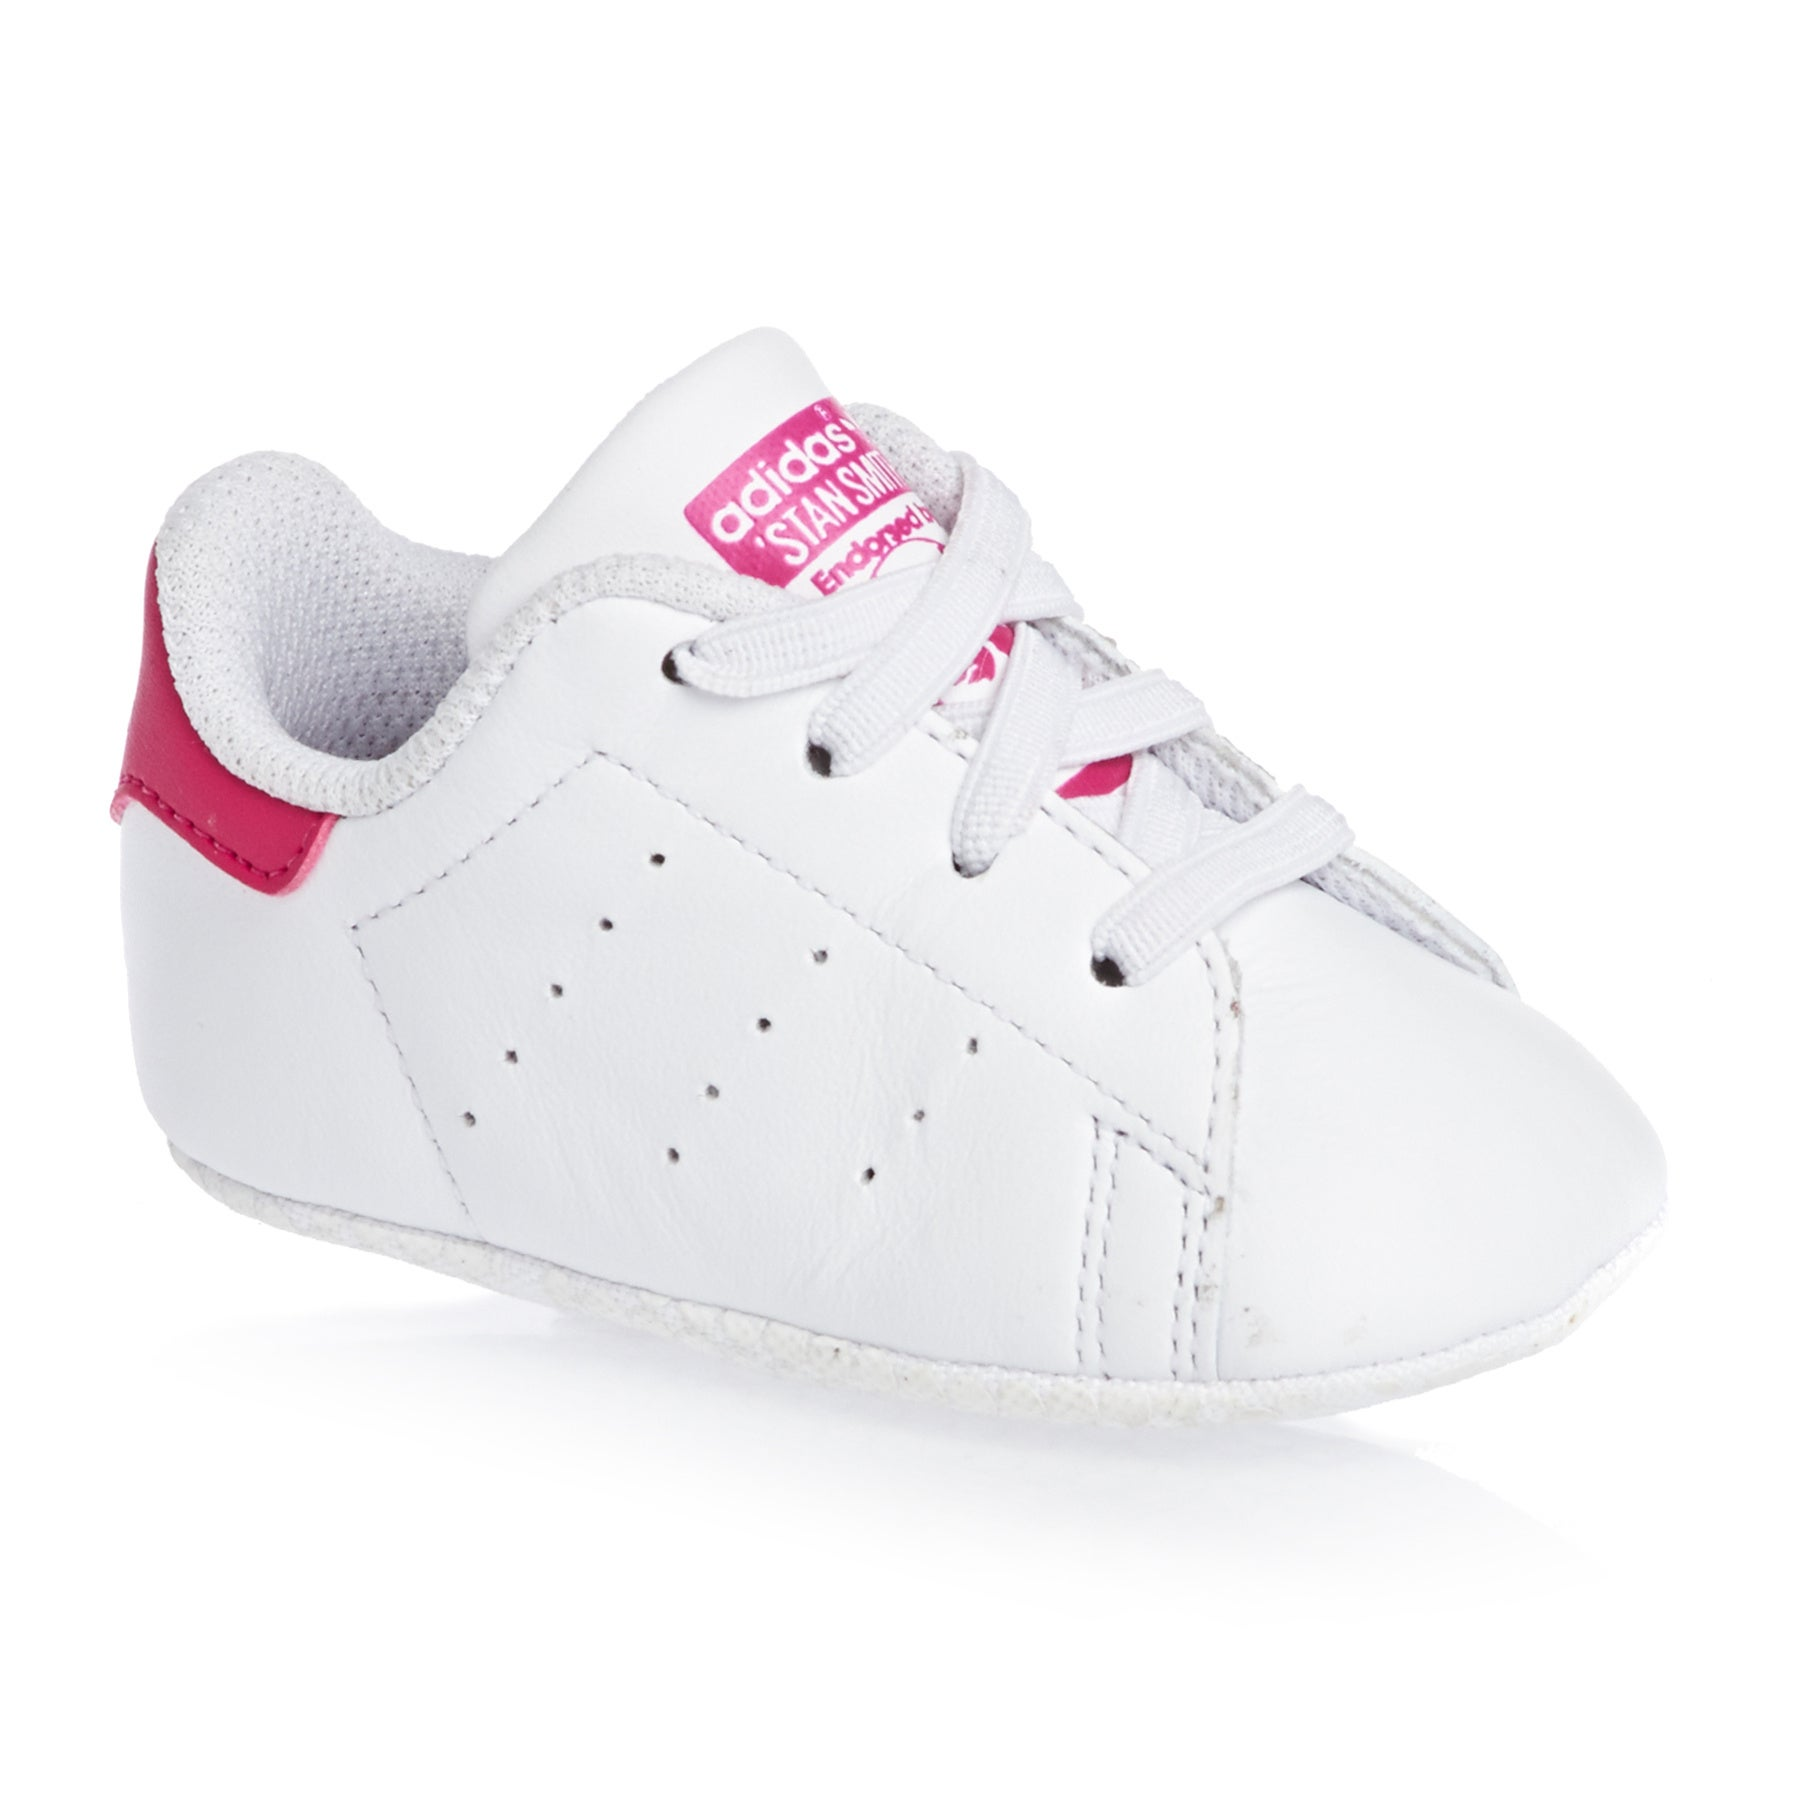 Adidas Originals Stan Smith Crib Shoes - White Pink